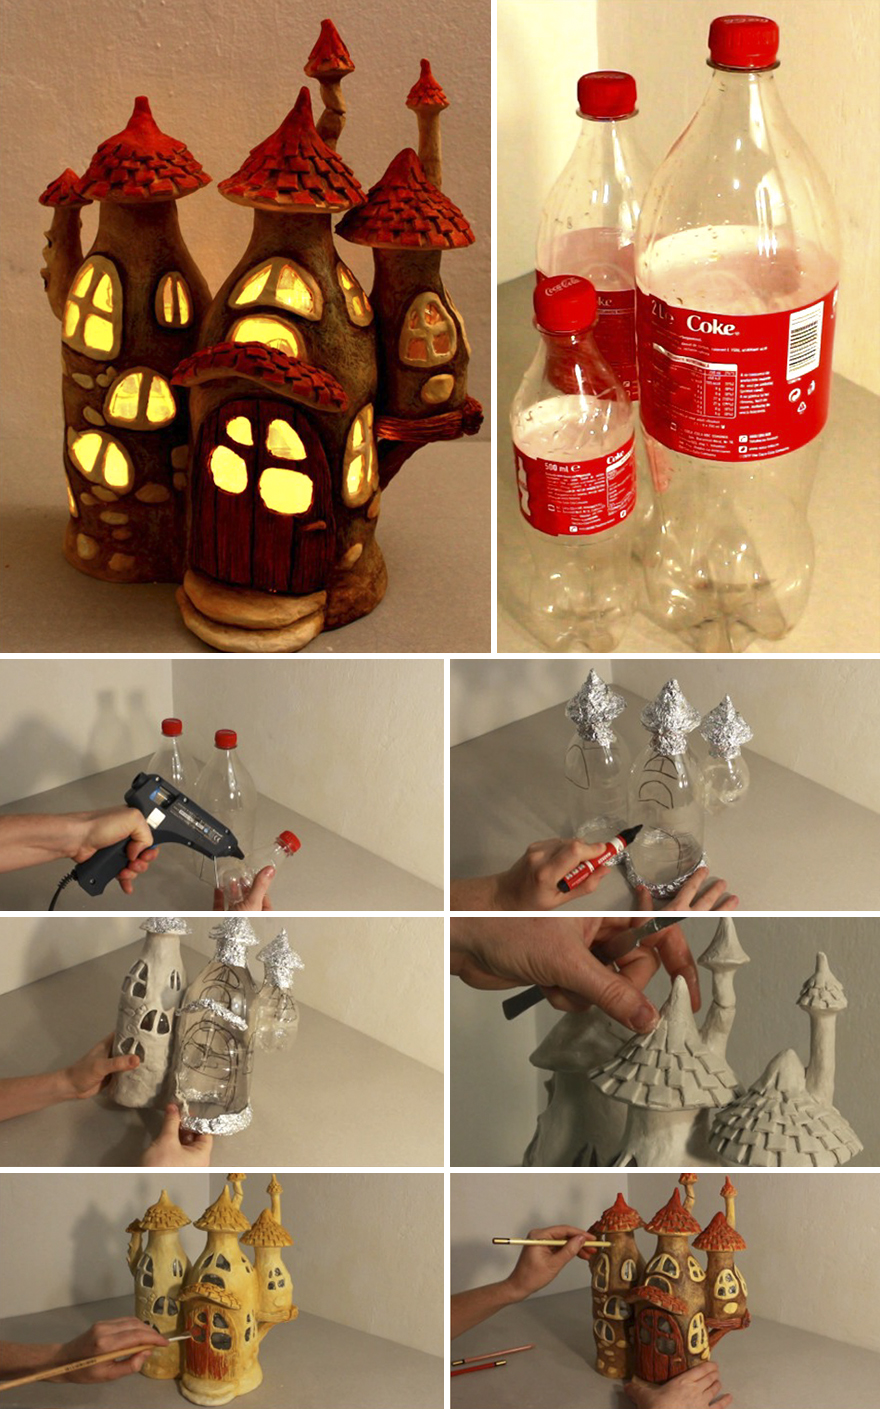 Recycled Plastic Bottle Lamp Recycling Some Plastic Bottles Into A Fairy House Lamp Bored Panda